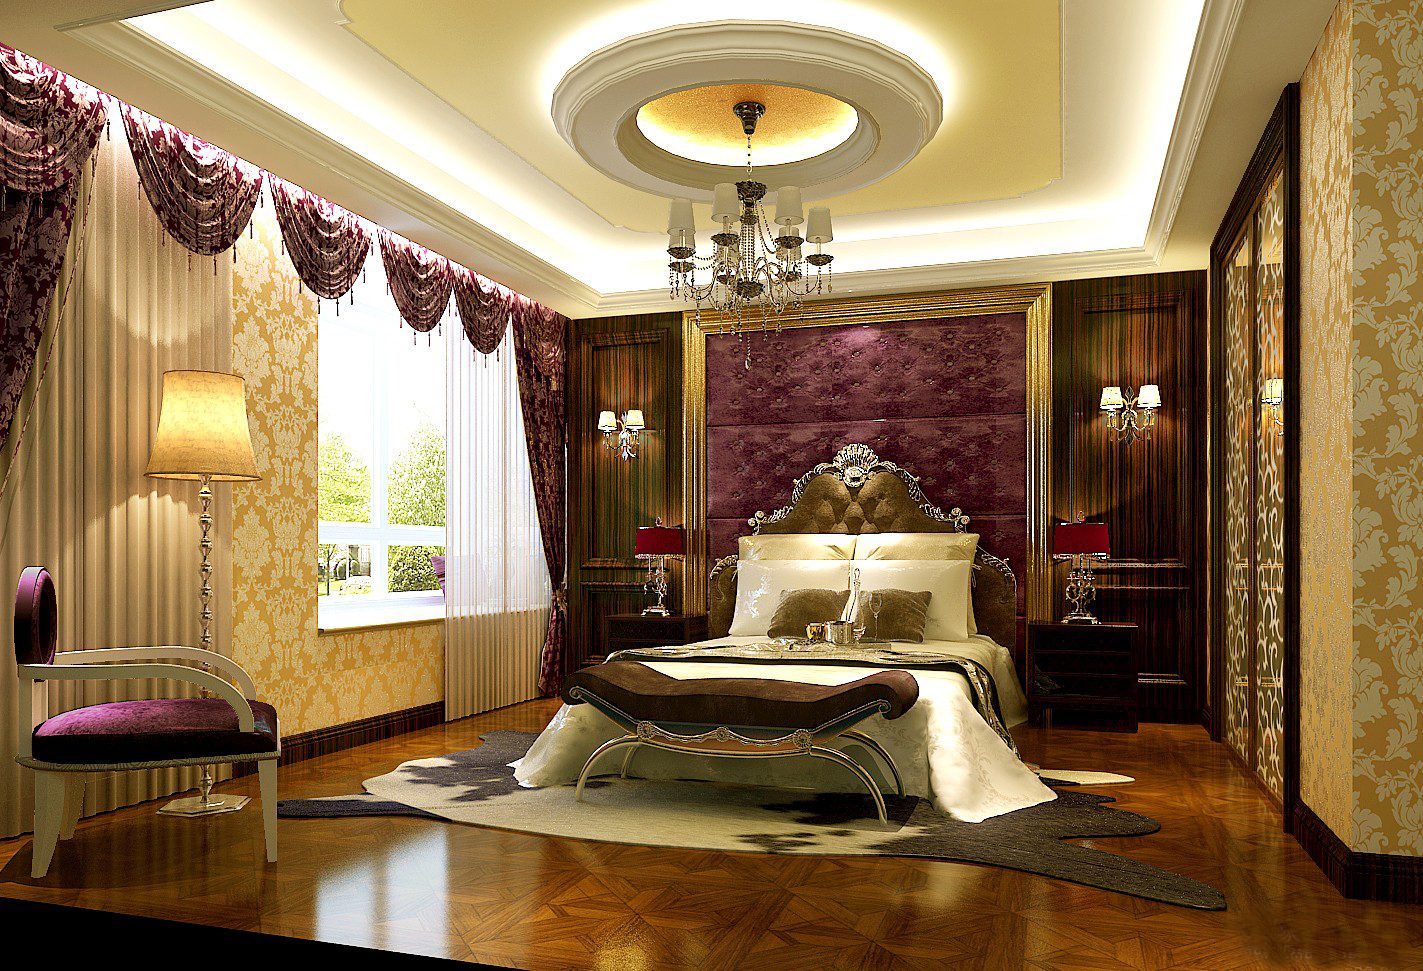 25 latest false designs for living room bed room In room designs